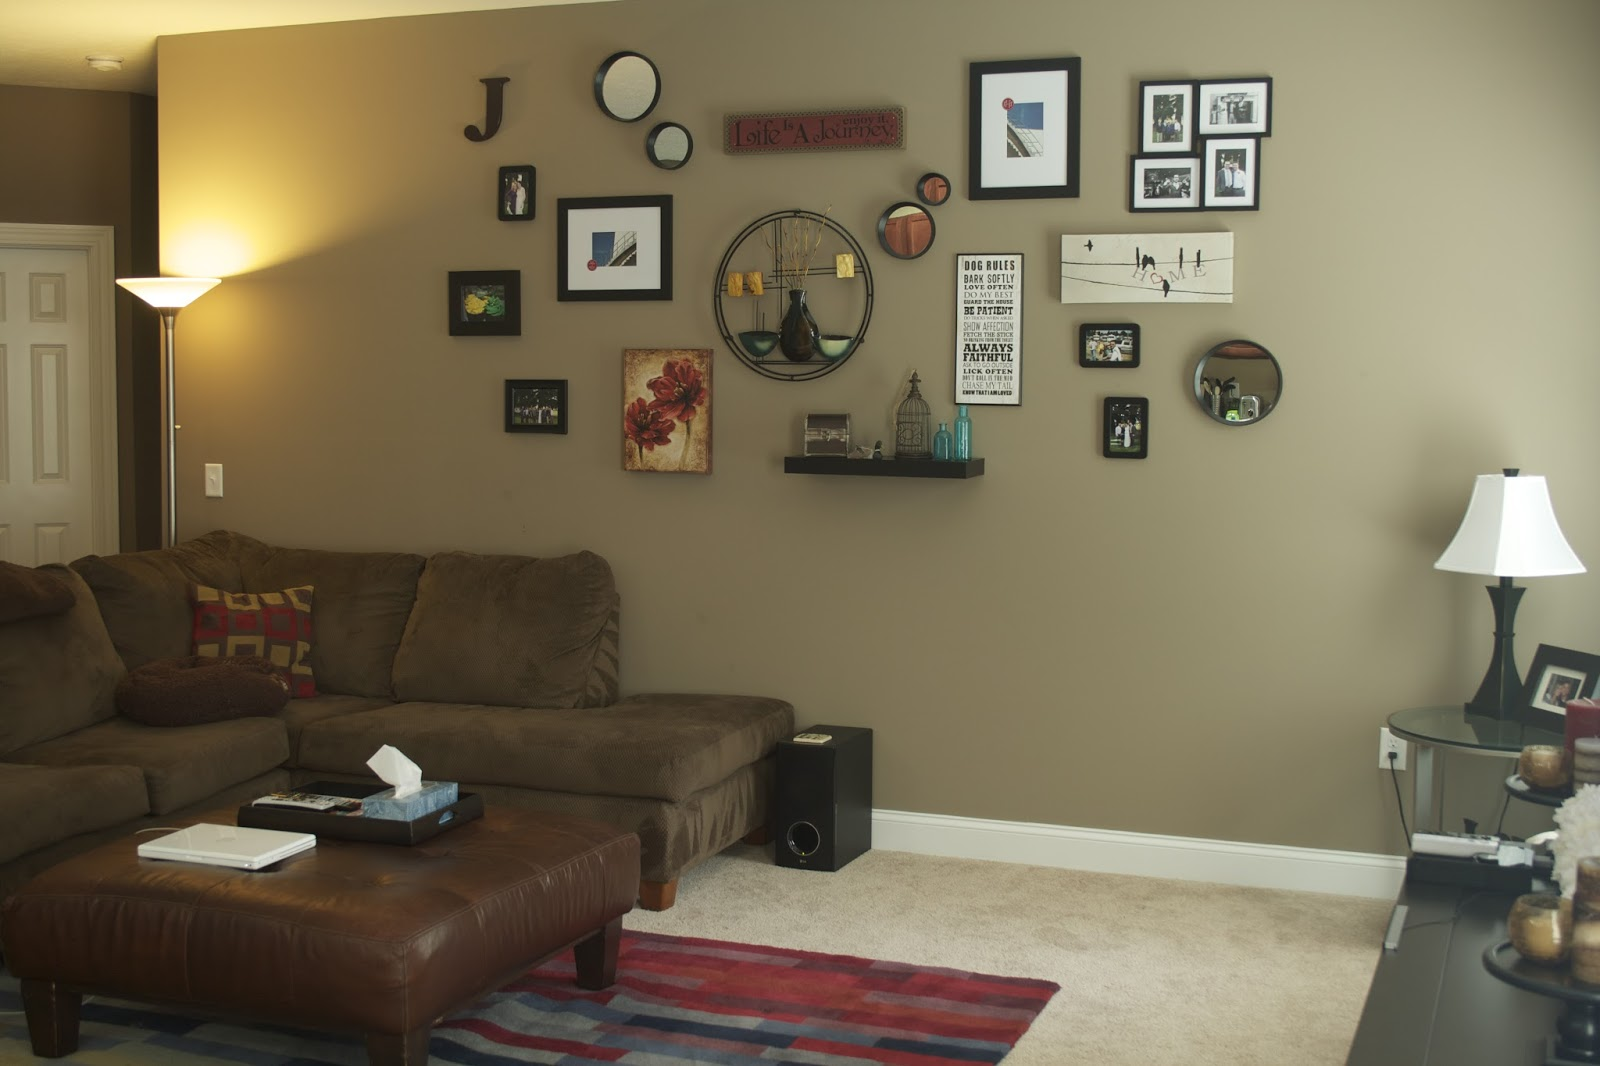 Room Decor: Oregon Transplant: Home Decor: Living Room Wall Collage